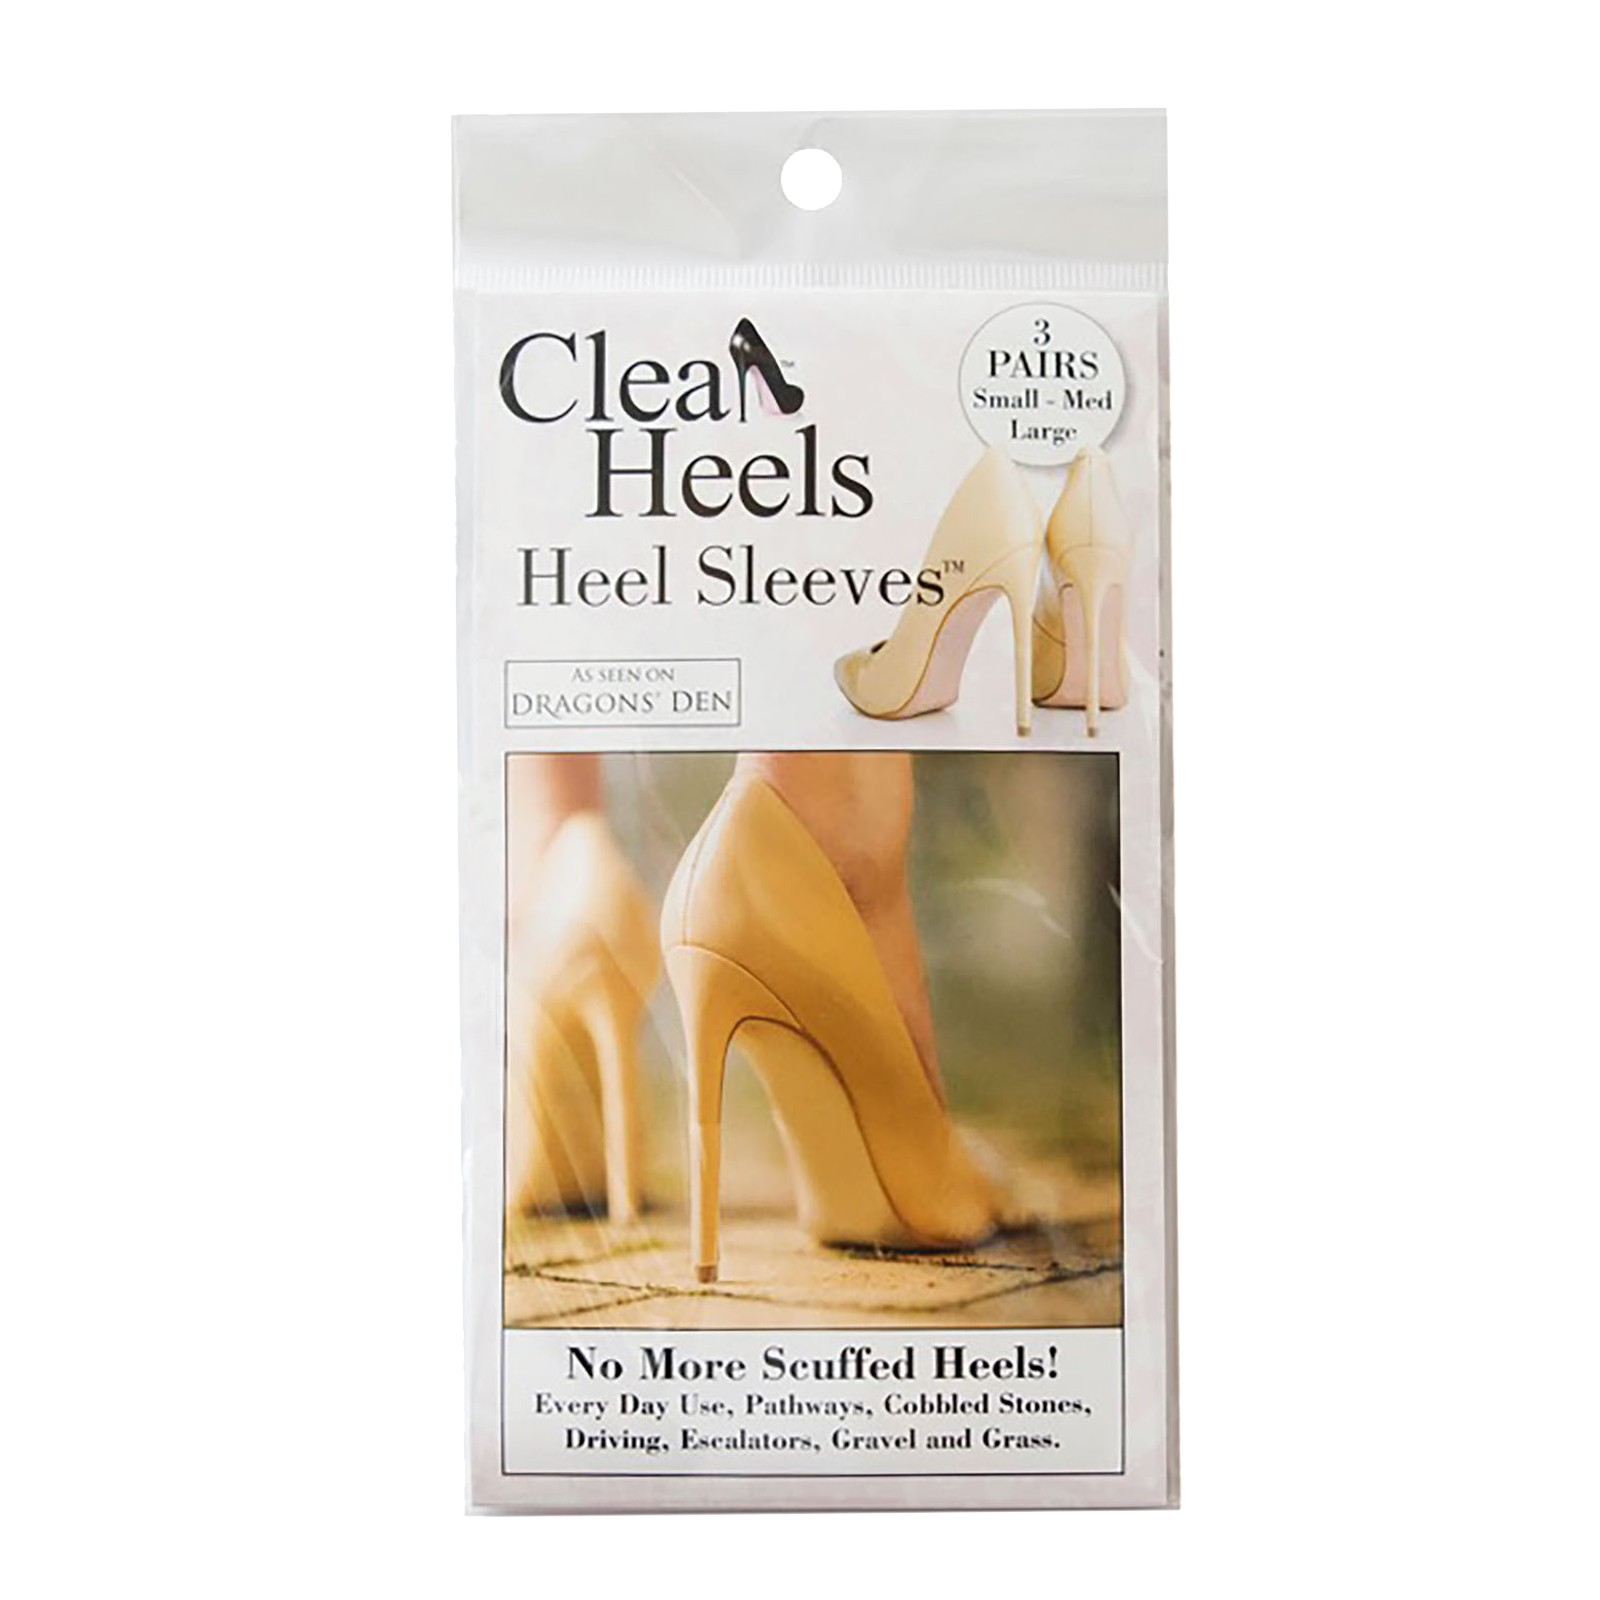 Clean Heels Heel Sleeves 3 Pair Pack Loose